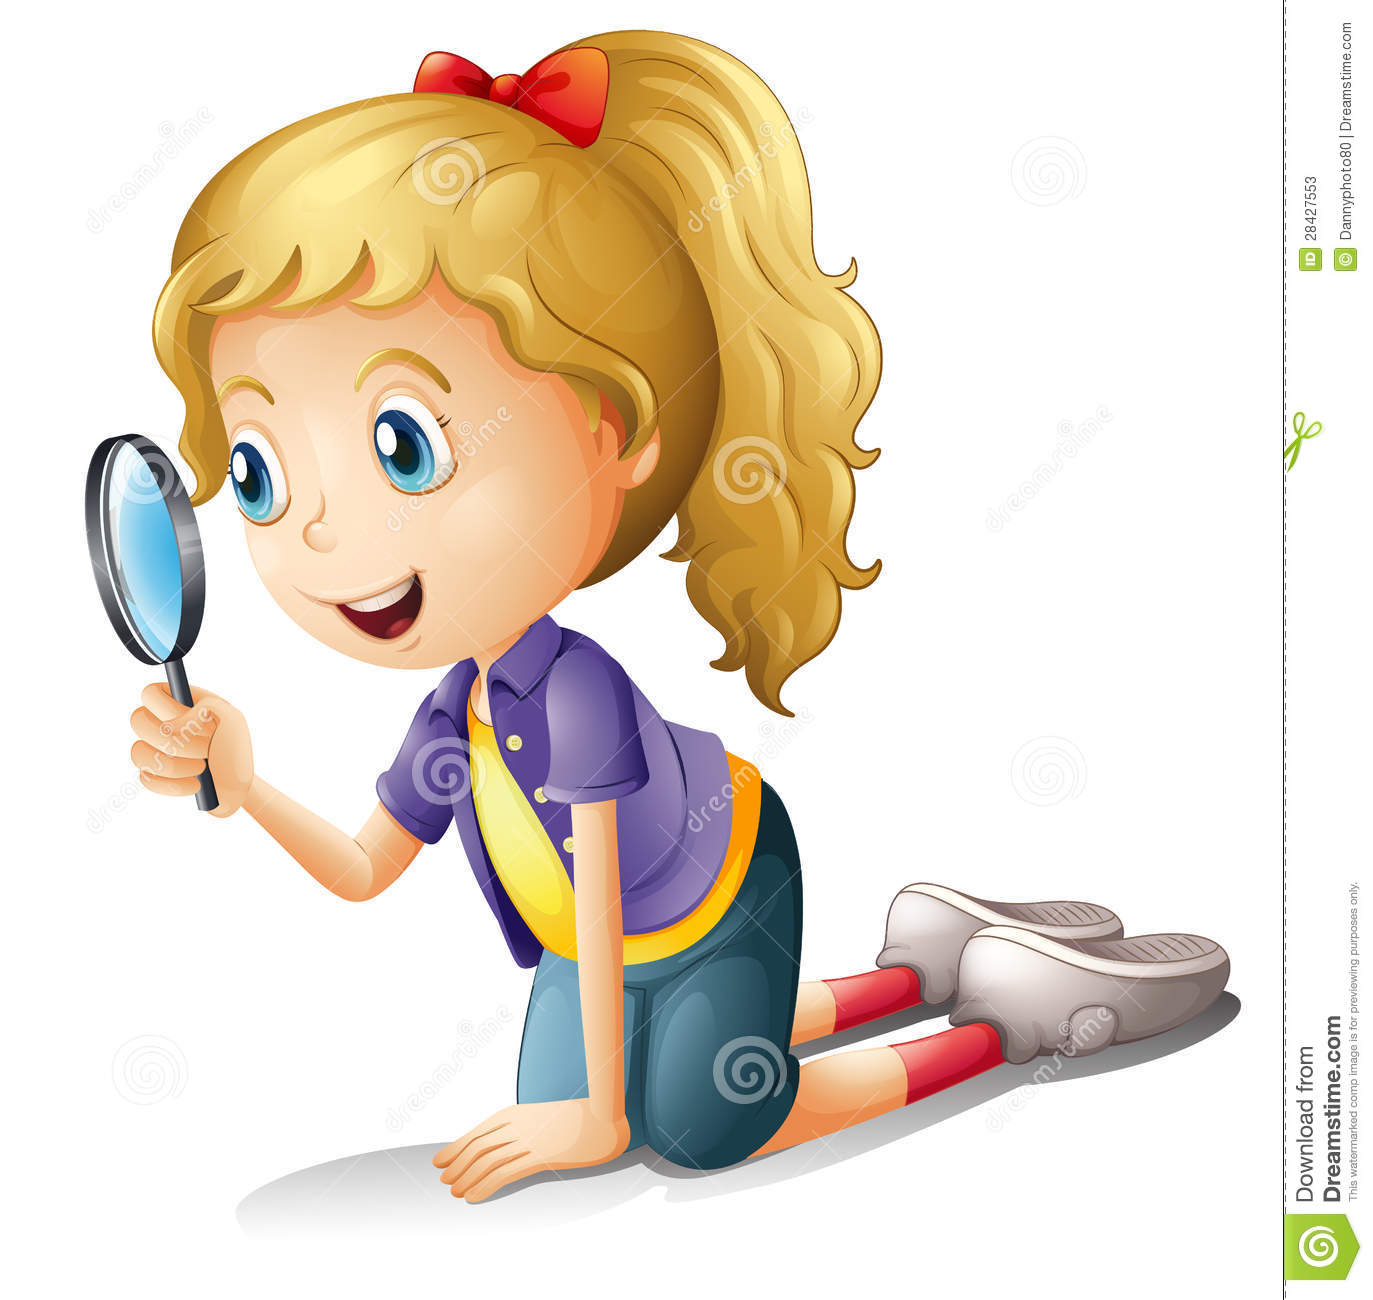 A girl and a magnifier